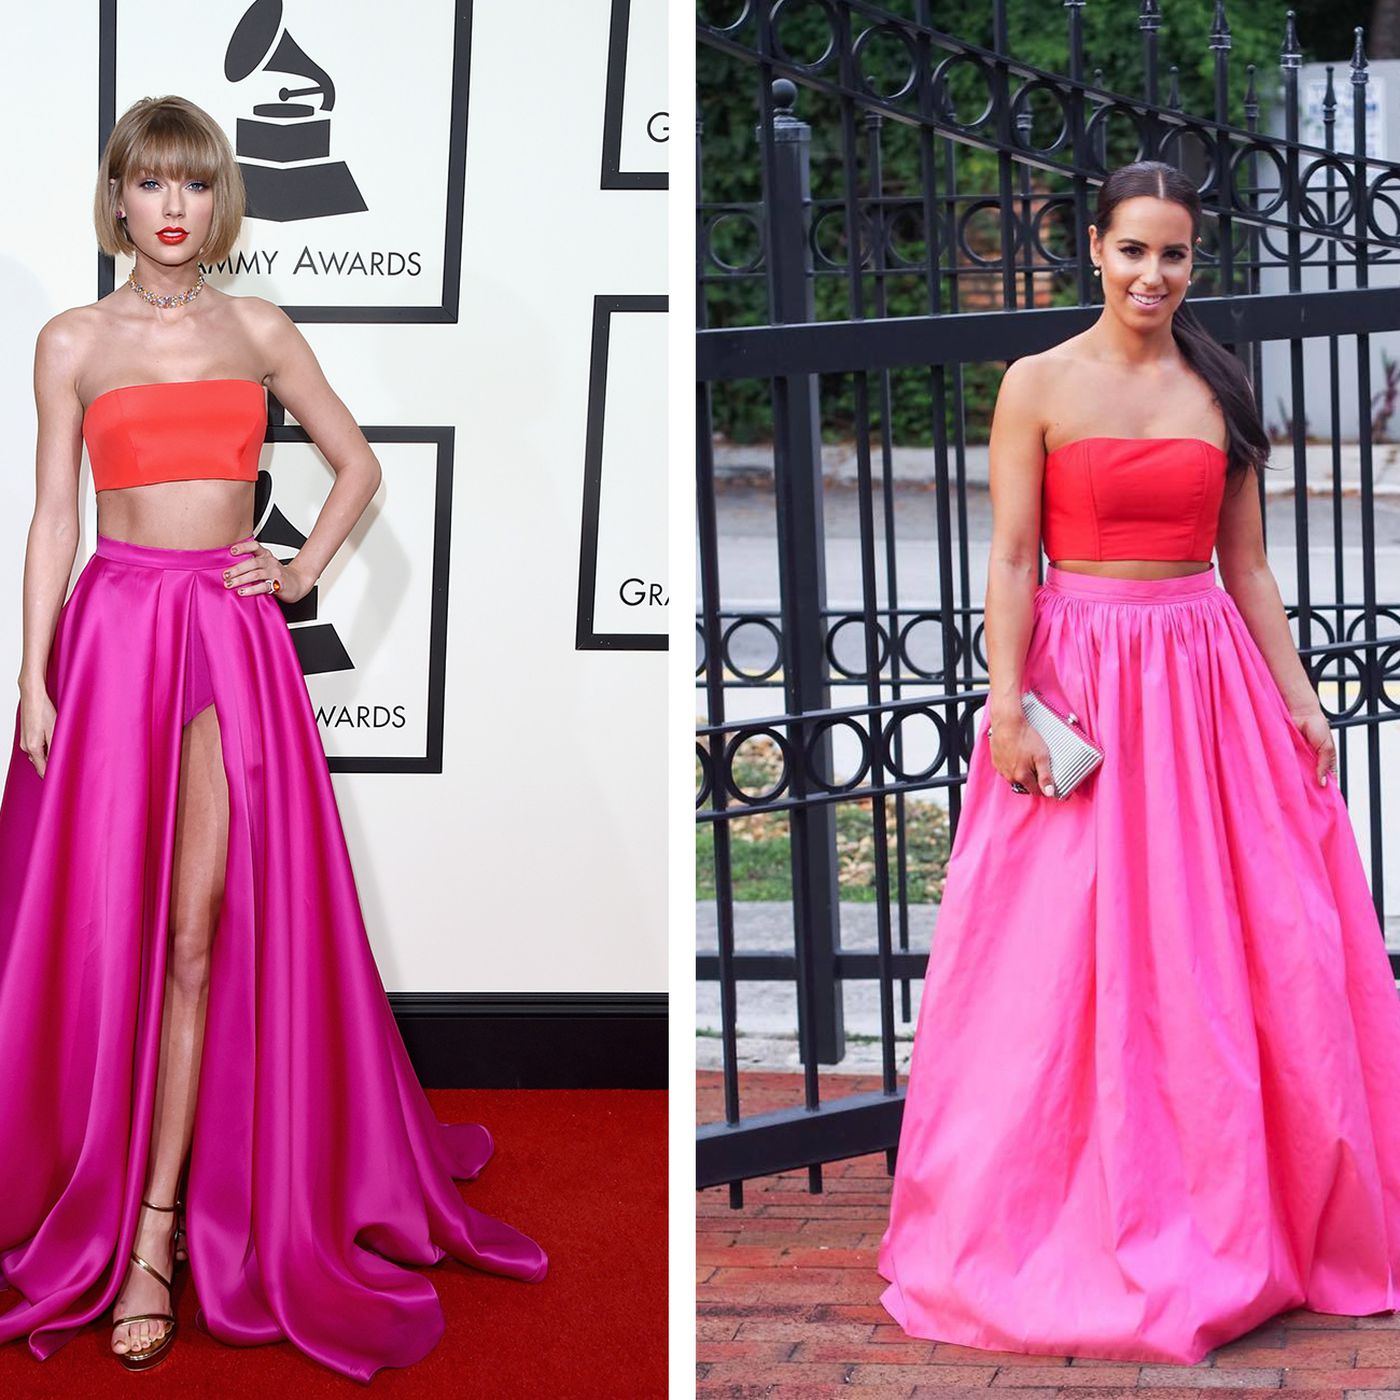 taylor swift s grammys 2016 dress looks way too similar to this miami blogger s gown racked miami taylor swift s grammys 2016 dress looks